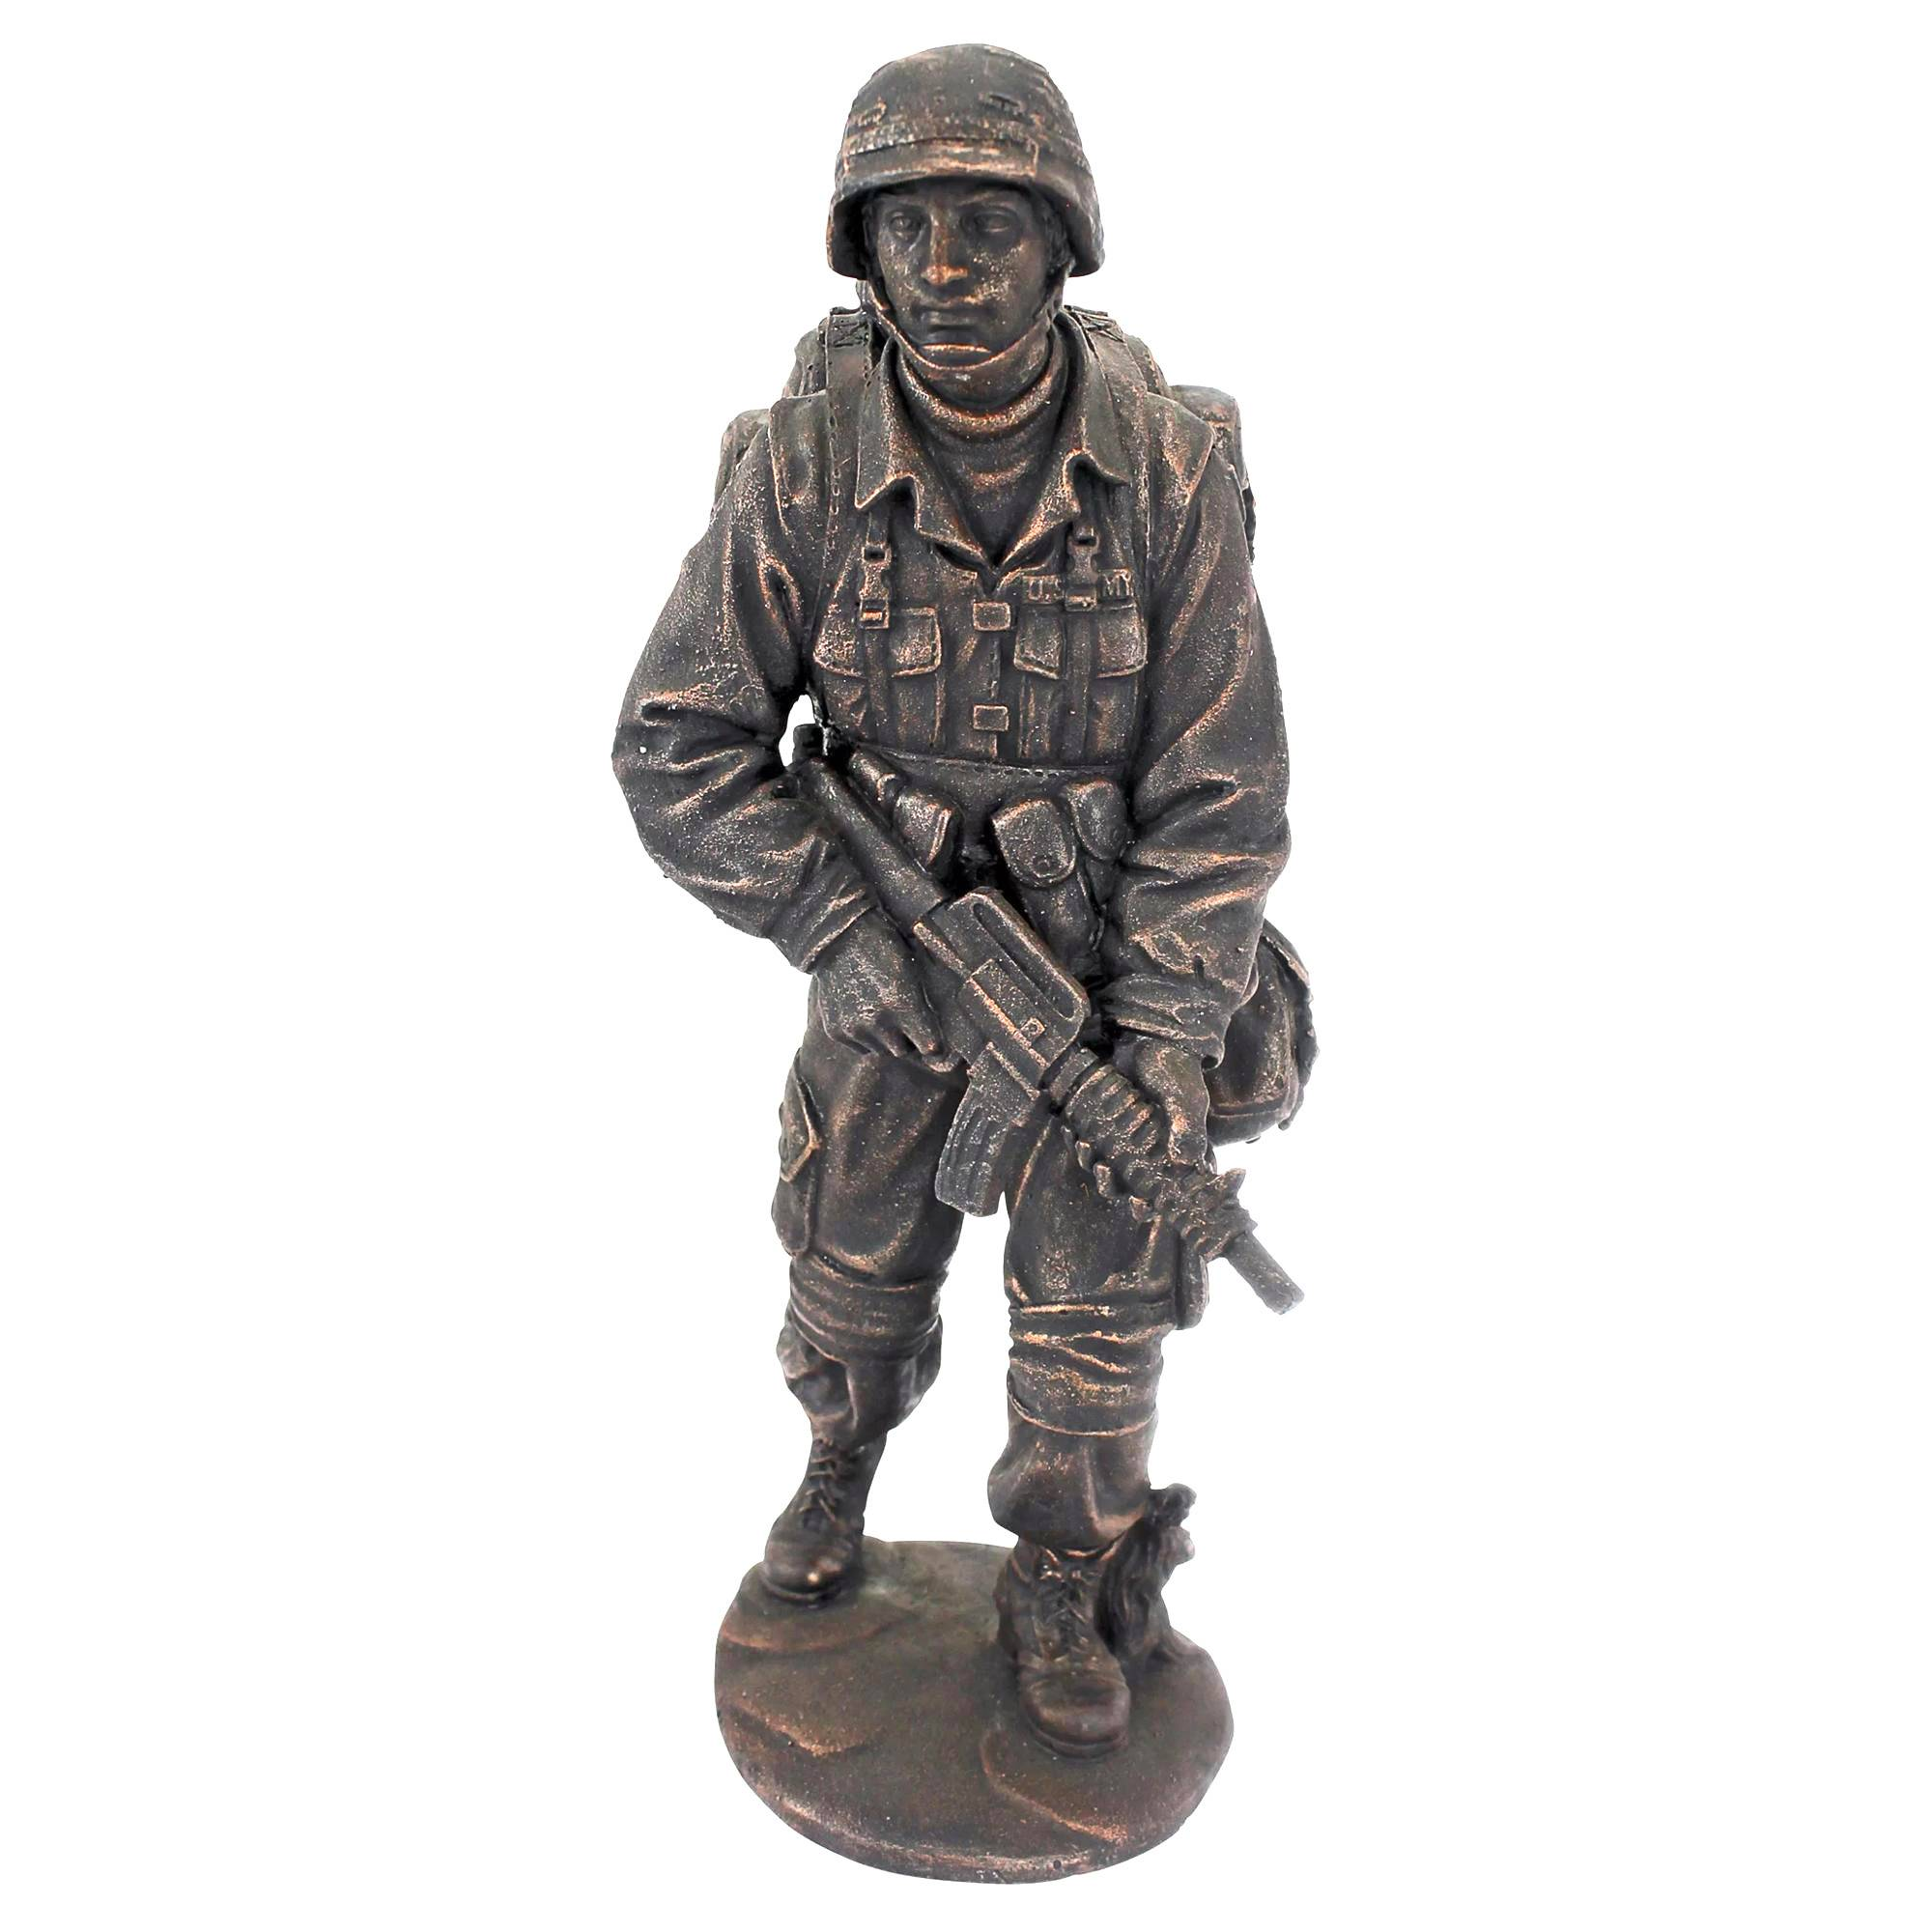 Online Exporter Milo Bronze Sculpture - Park decoration casting metal sculpture bronze life size soldier statue – Atisan Works